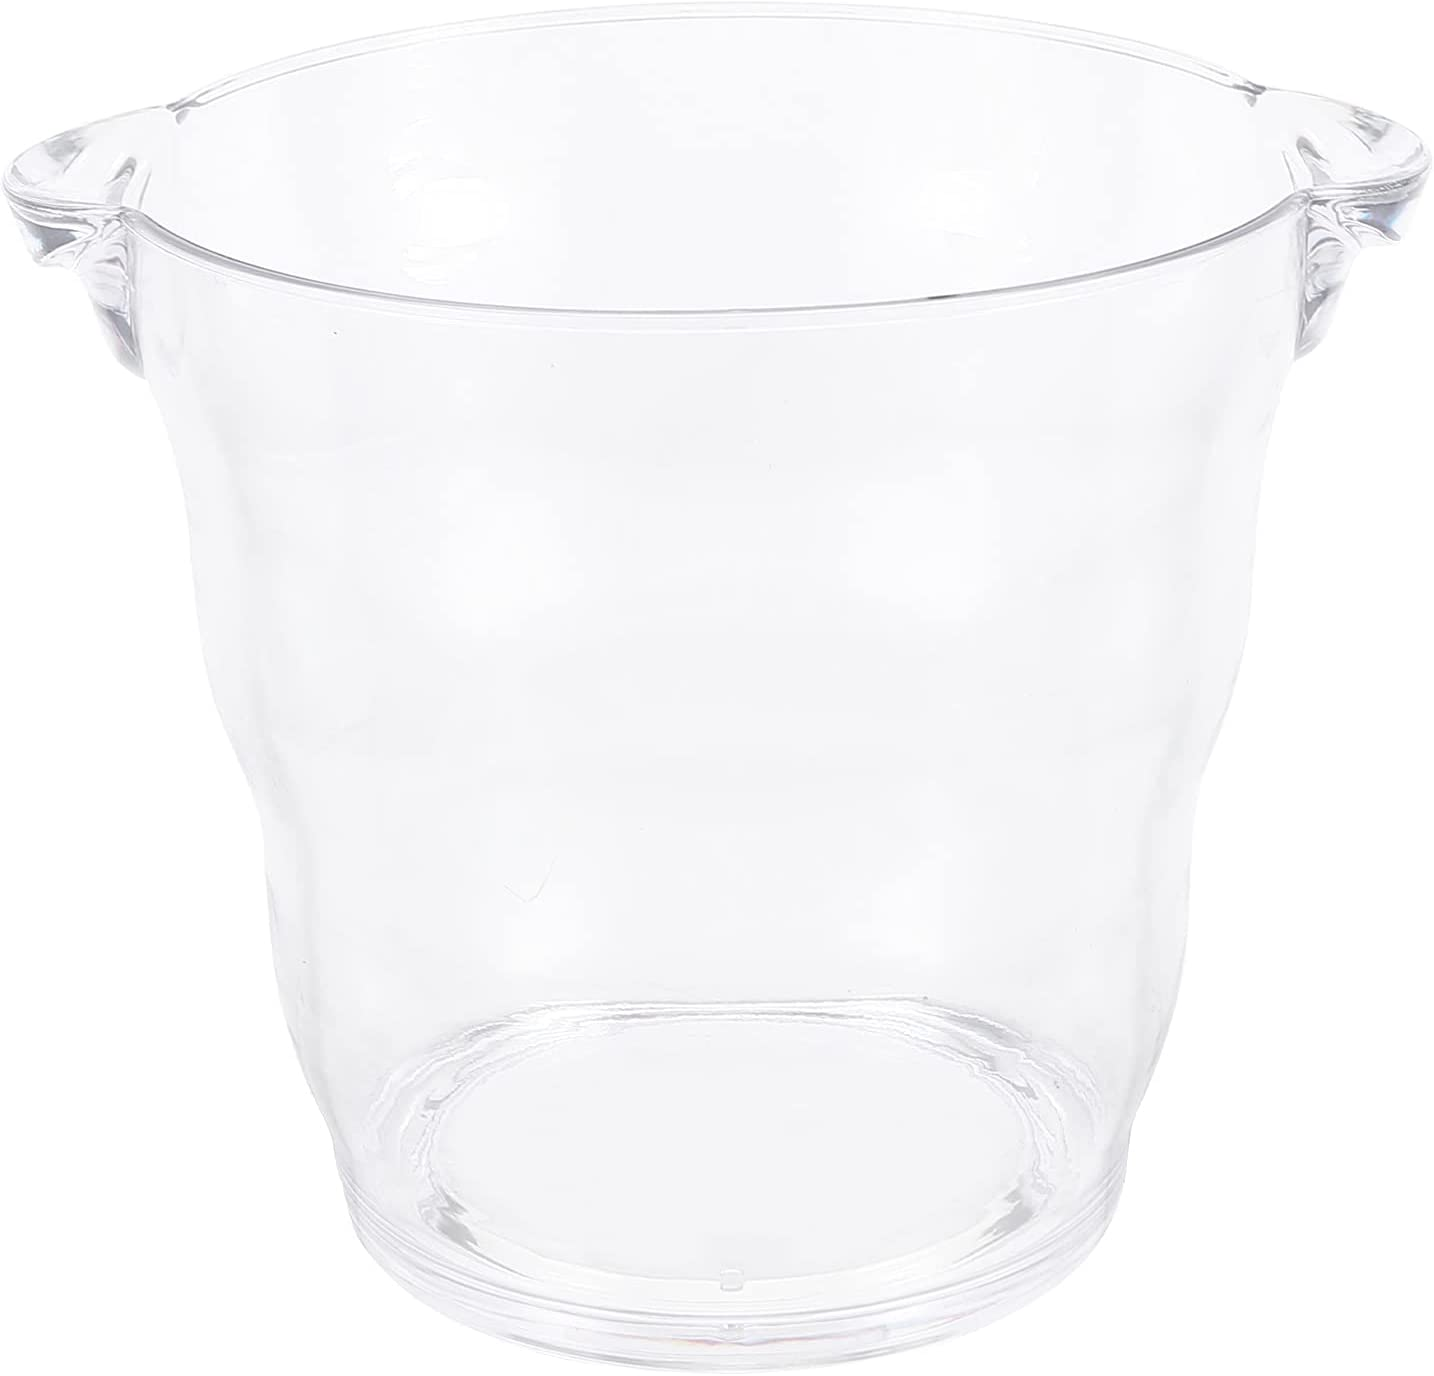 VOSAREA Acrylic Ice Bucket Clear Large discharge sale Plastic Portable Beer Be Cheap sale